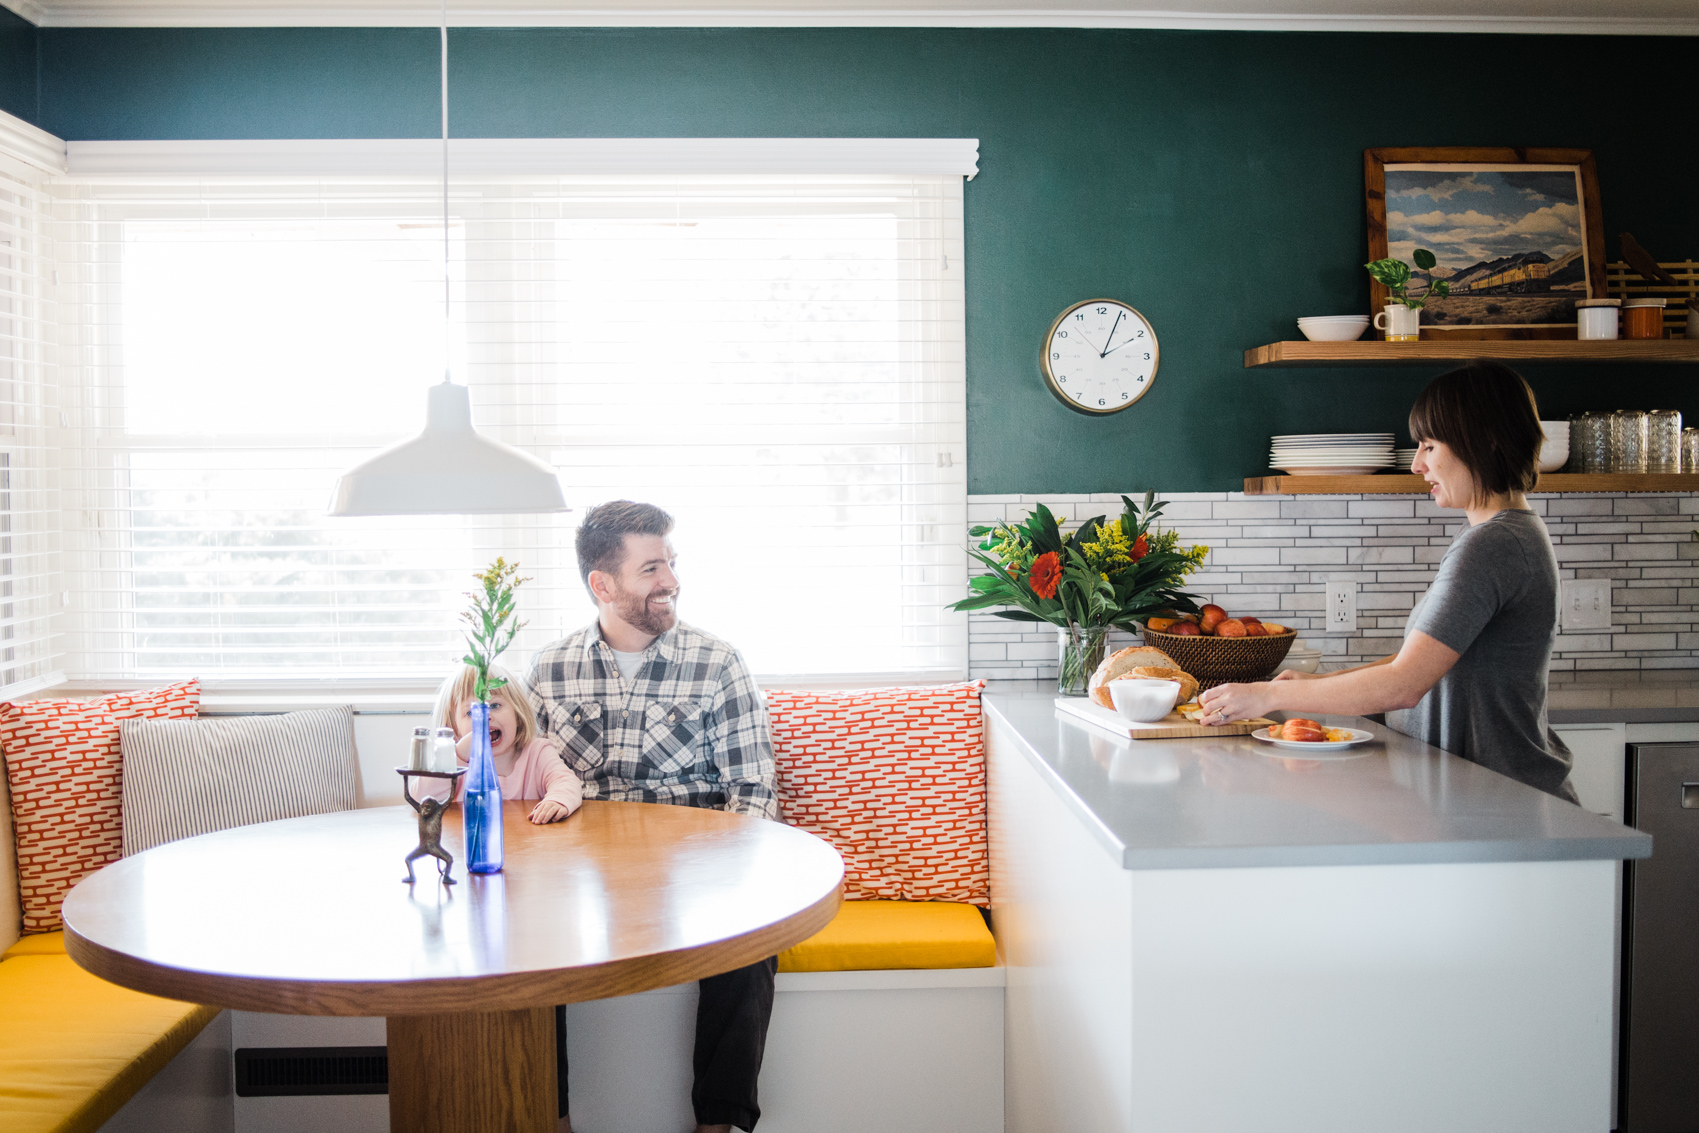 Creating A Built In Banquette Or Bench Seating For A Kitchen